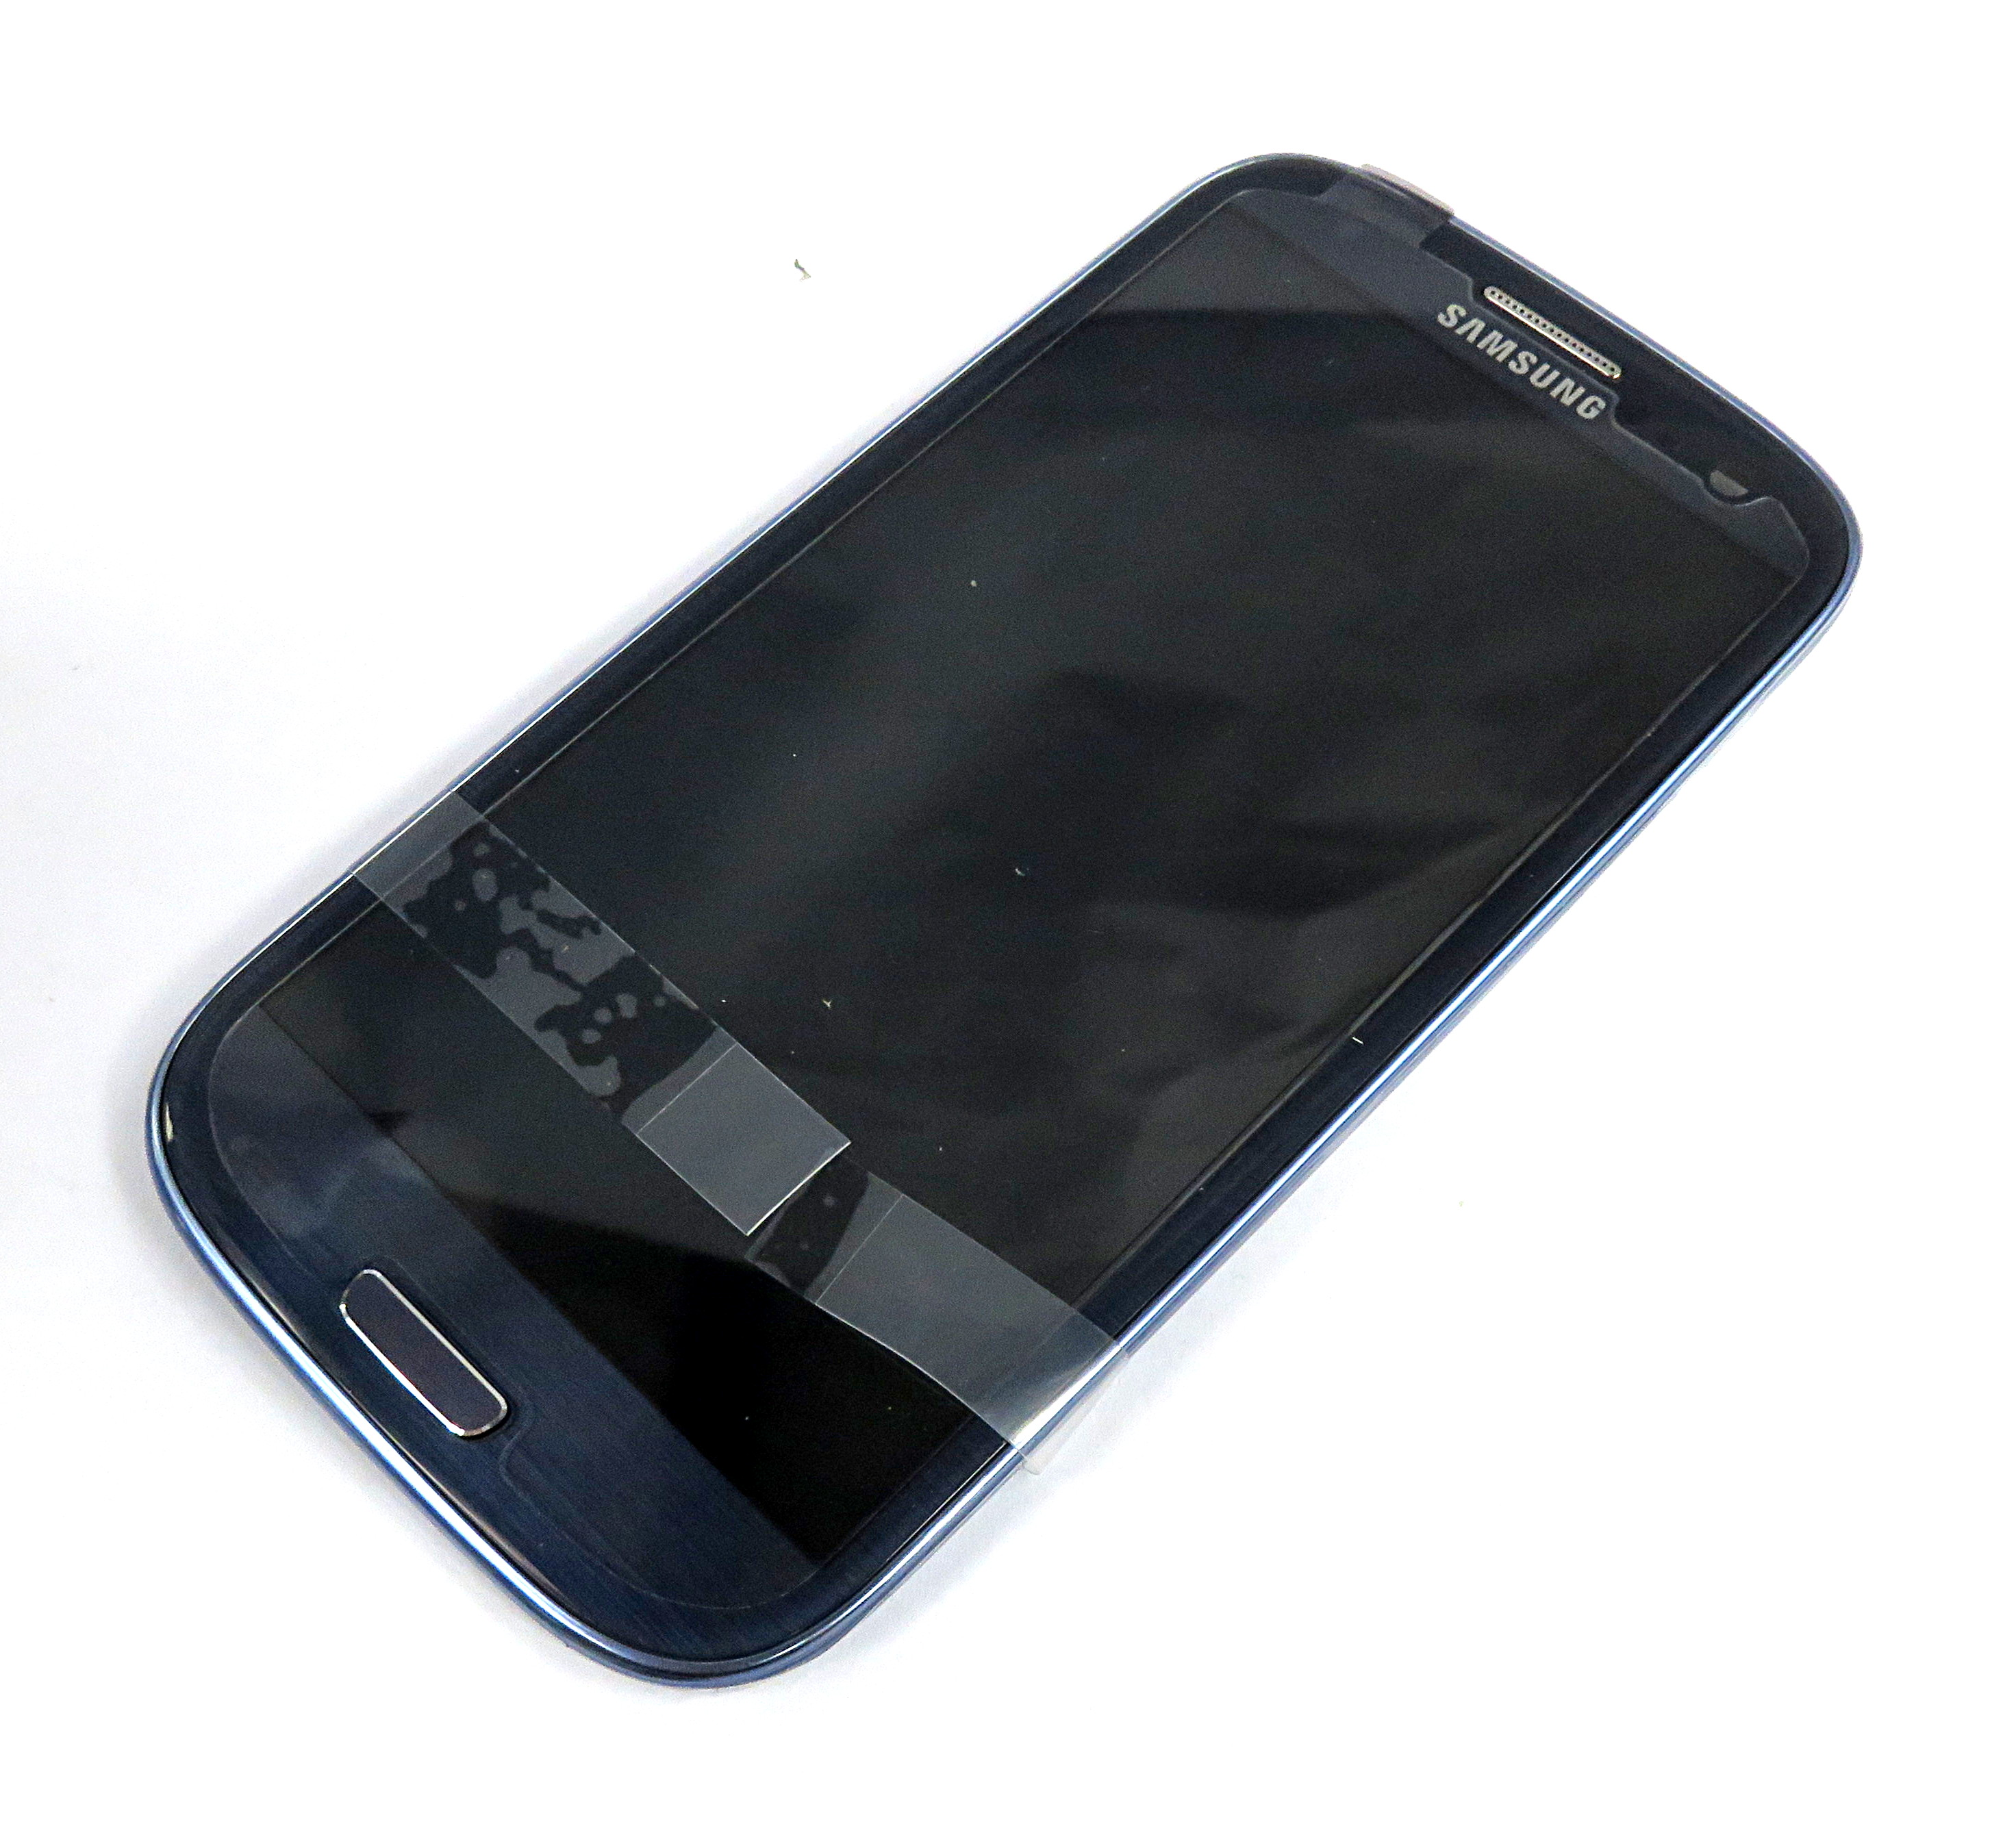 GH97-15472A Samsung Galaxy S3 Neo I9301I LCD, Touchpanel & Digitizer Assy., Blue